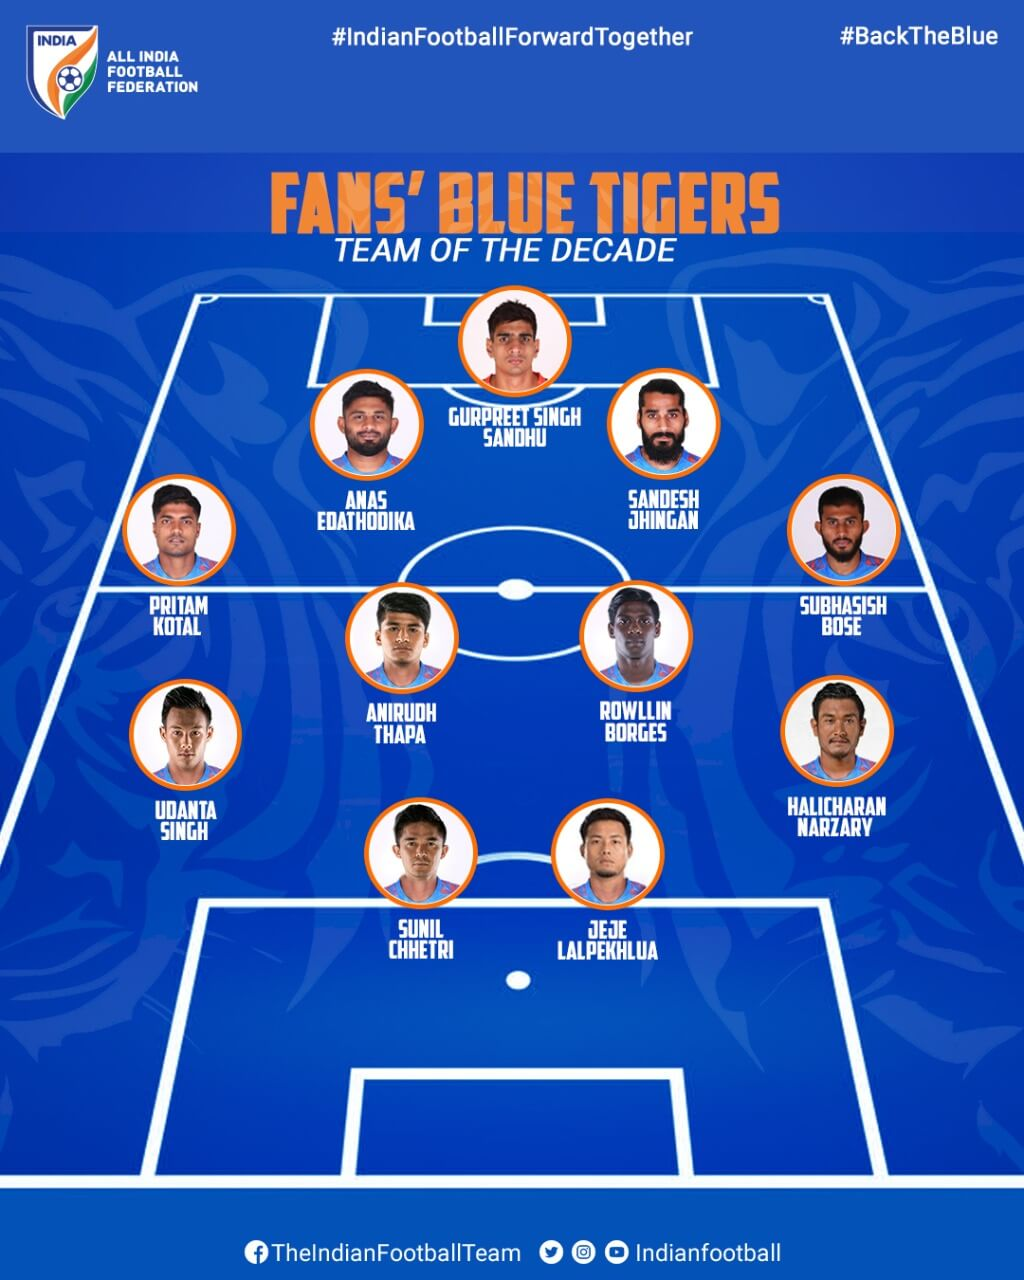 Fans' Blue Tigers Team of the Decade (Image courtesy: AIFF Media)